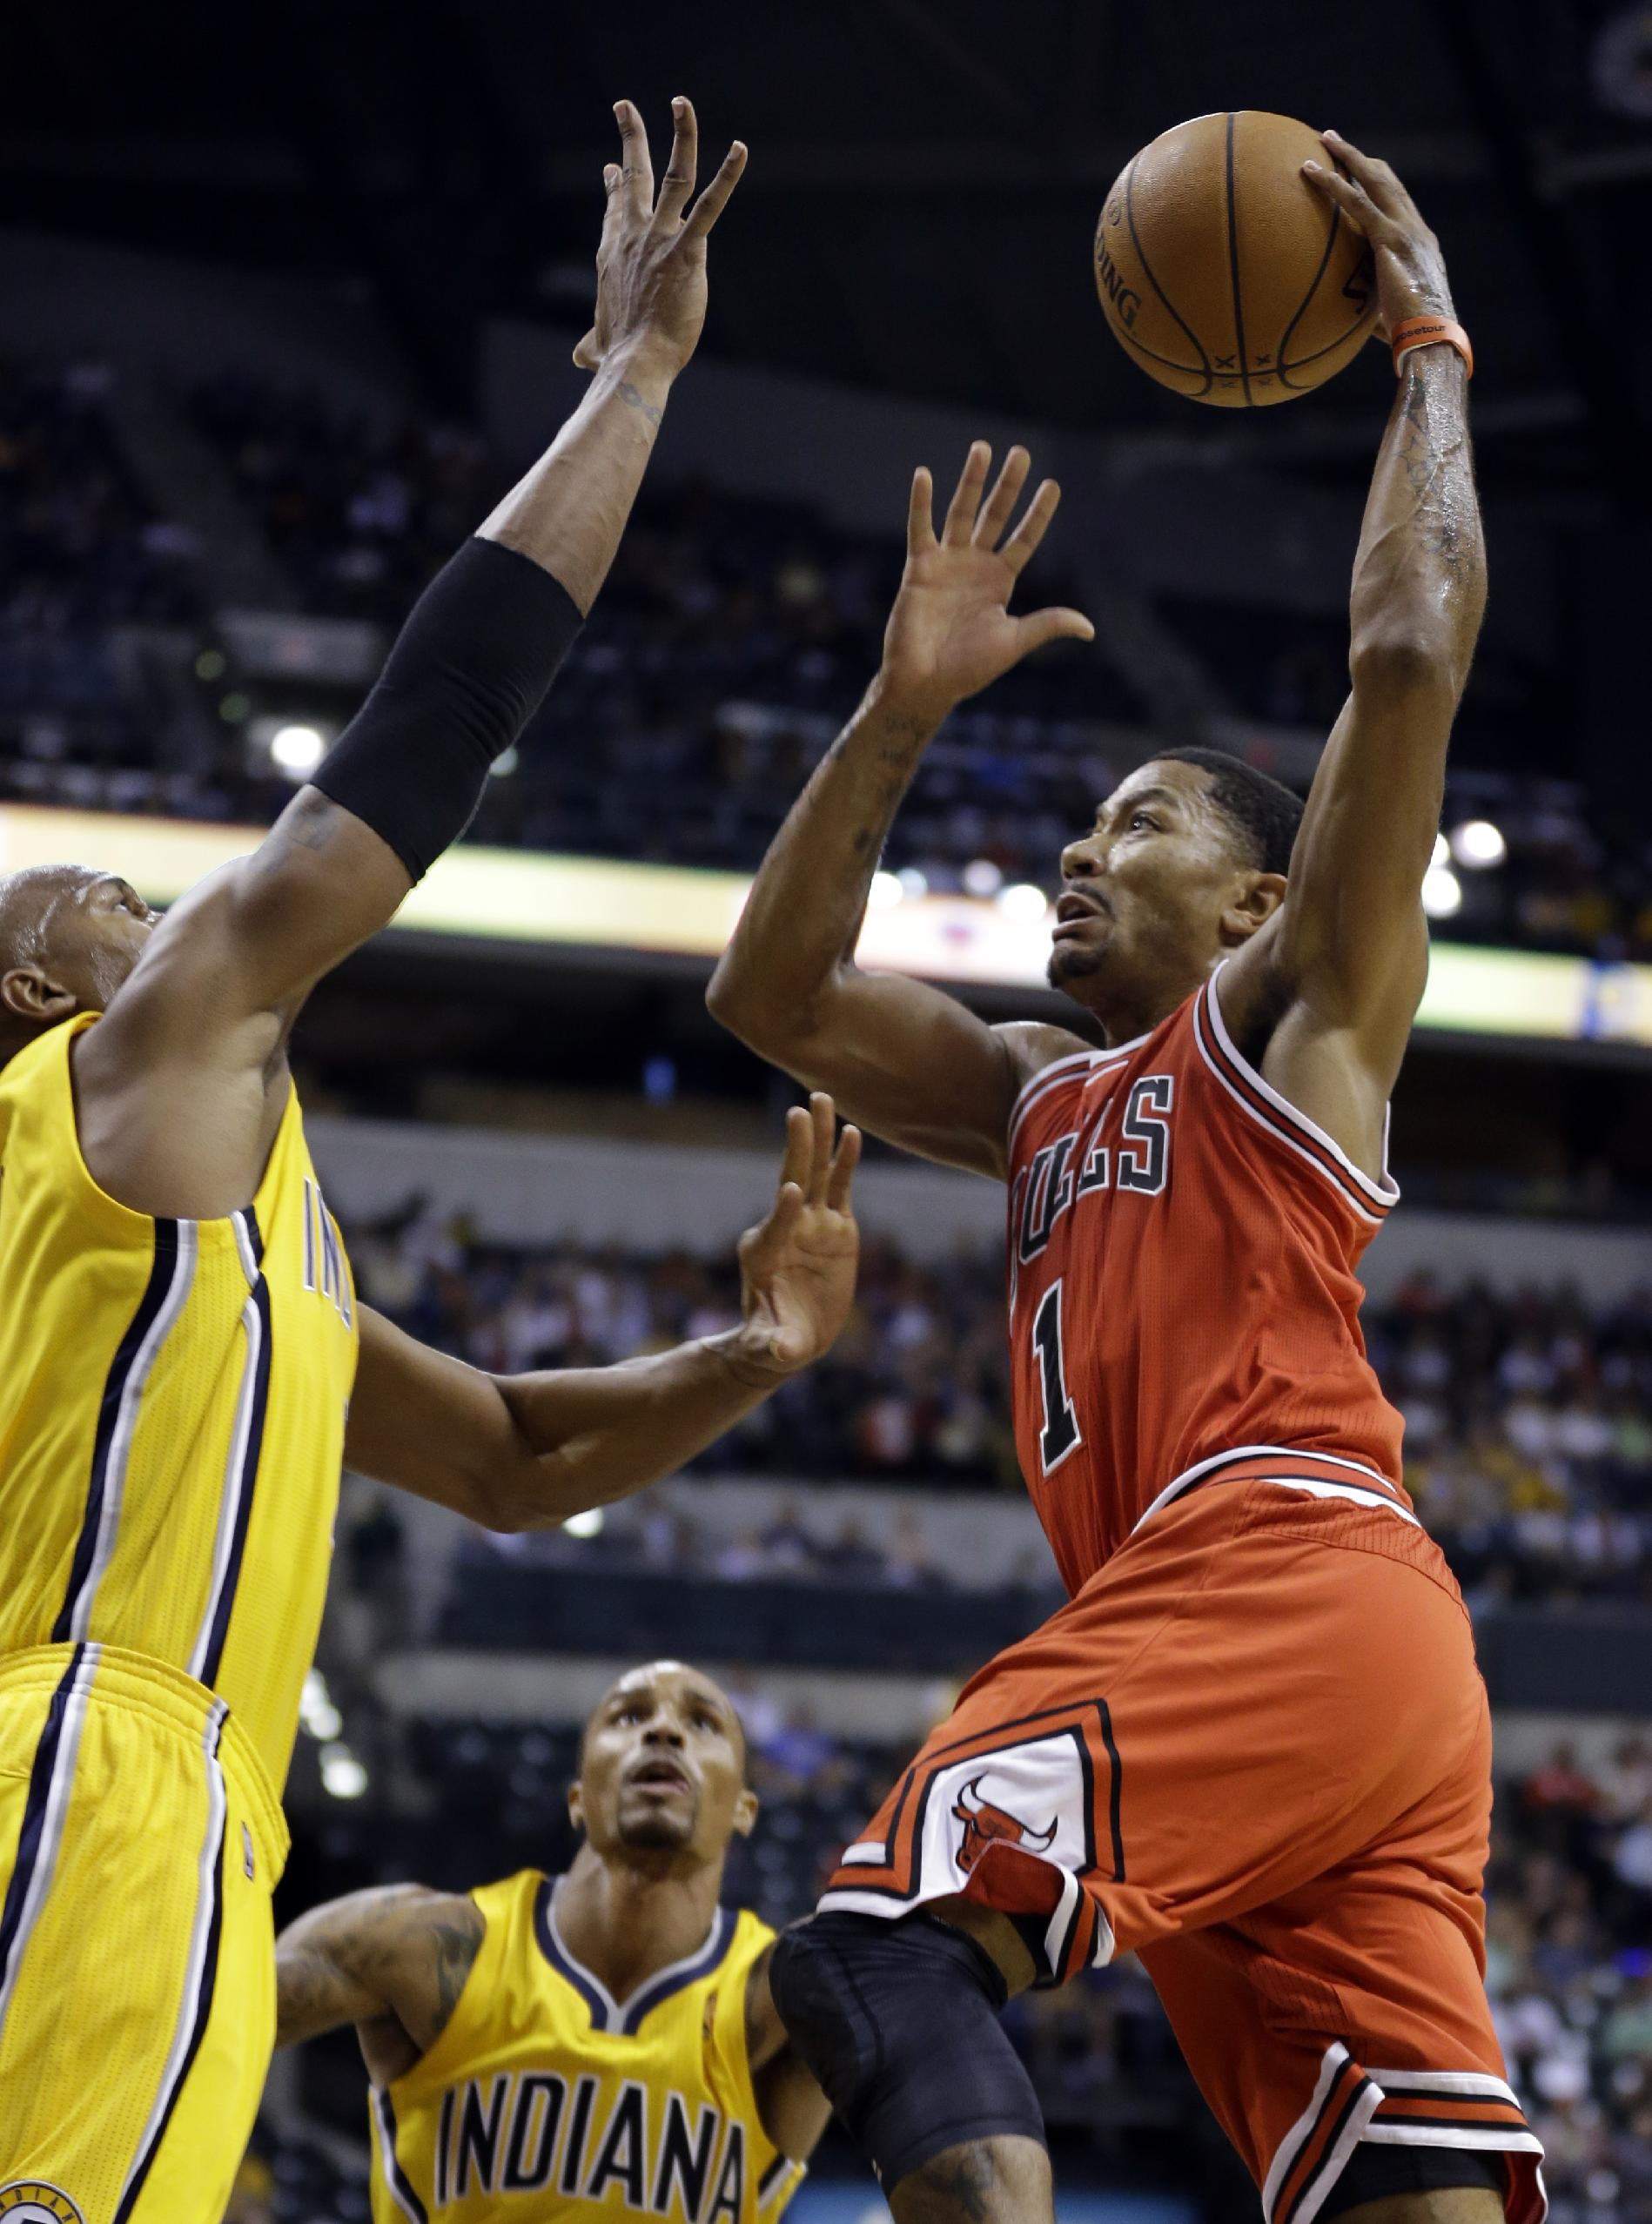 Derrick Rose scored 13 points in the Bulls' exhibition victory over the Pacers. (AP)